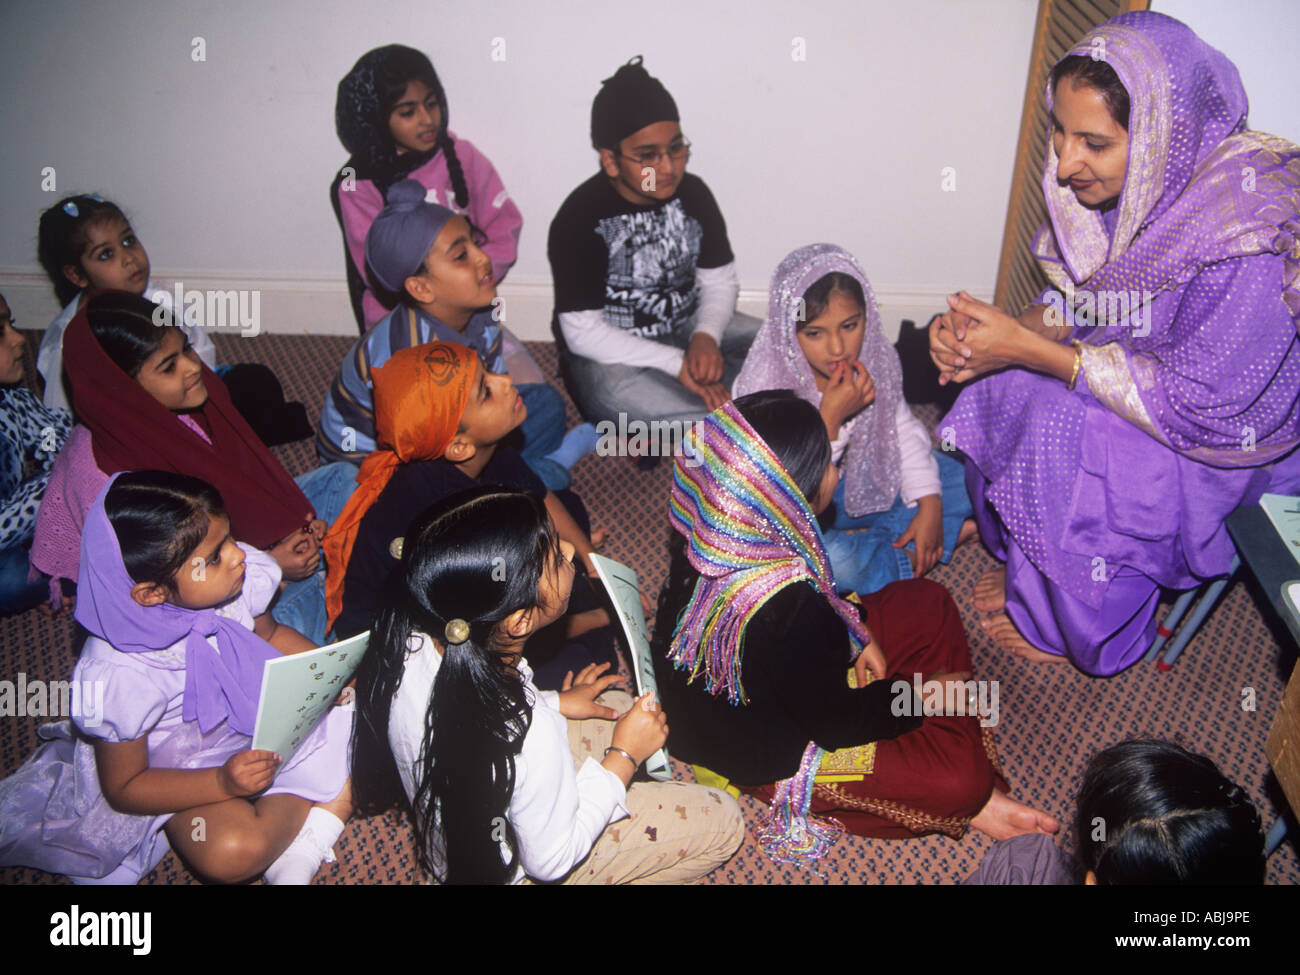 Sunday school lesson for young Sikh children in the gurdwara - Stock Image